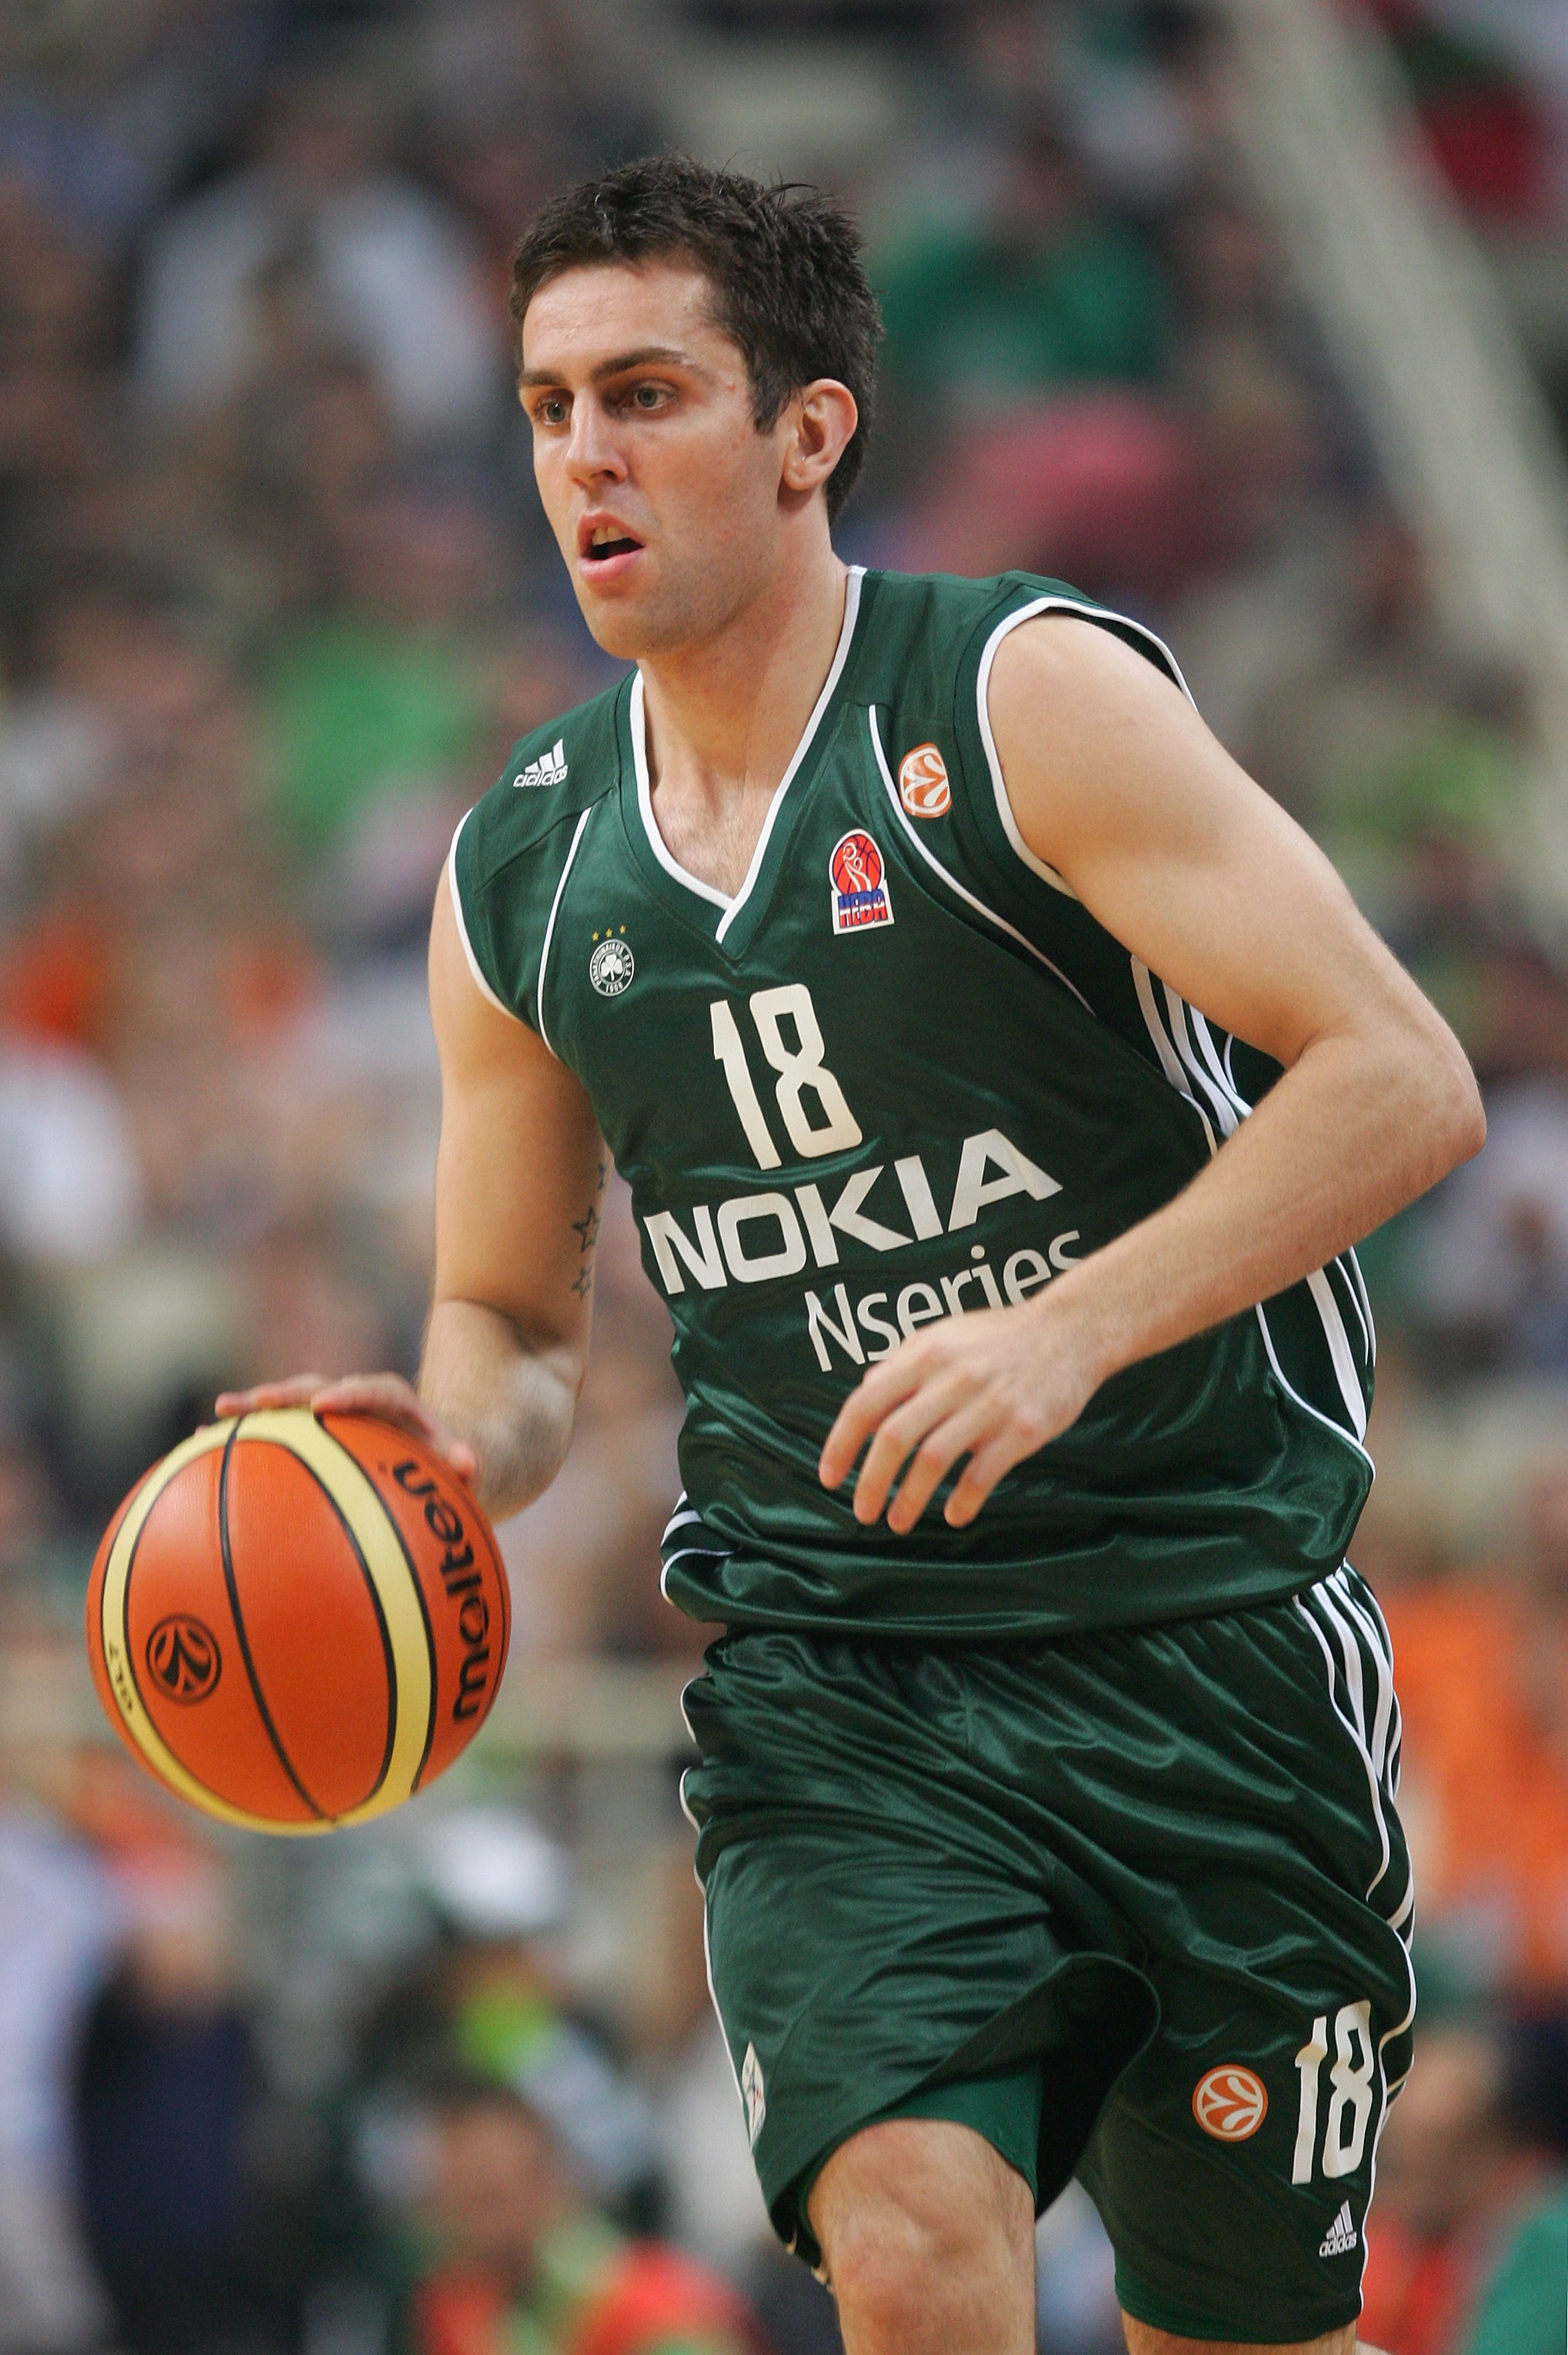 ATHENS, GREECE - MAY 04:  Milos Vujanic of Panathinaikos in action during the EuroLeague Final Four Semi Final match between Panathinaikos and Tau Ceramica at the Oaka Arena on May 4, 2007 in Athens, Greece.  (Photo by Julian Finney/Getty Images)